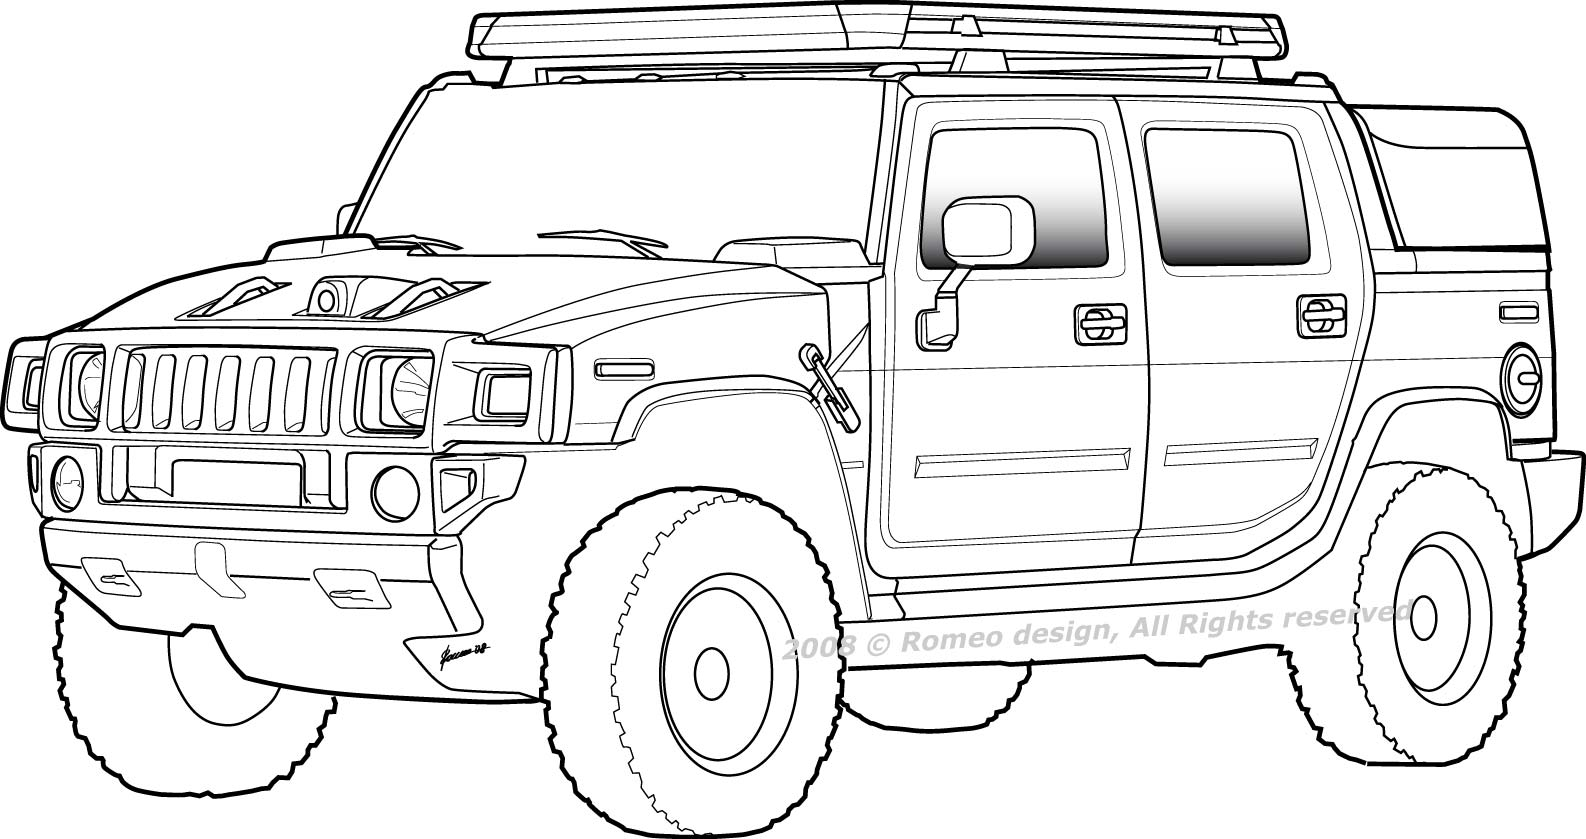 hummer coloring pages to print - photo#15